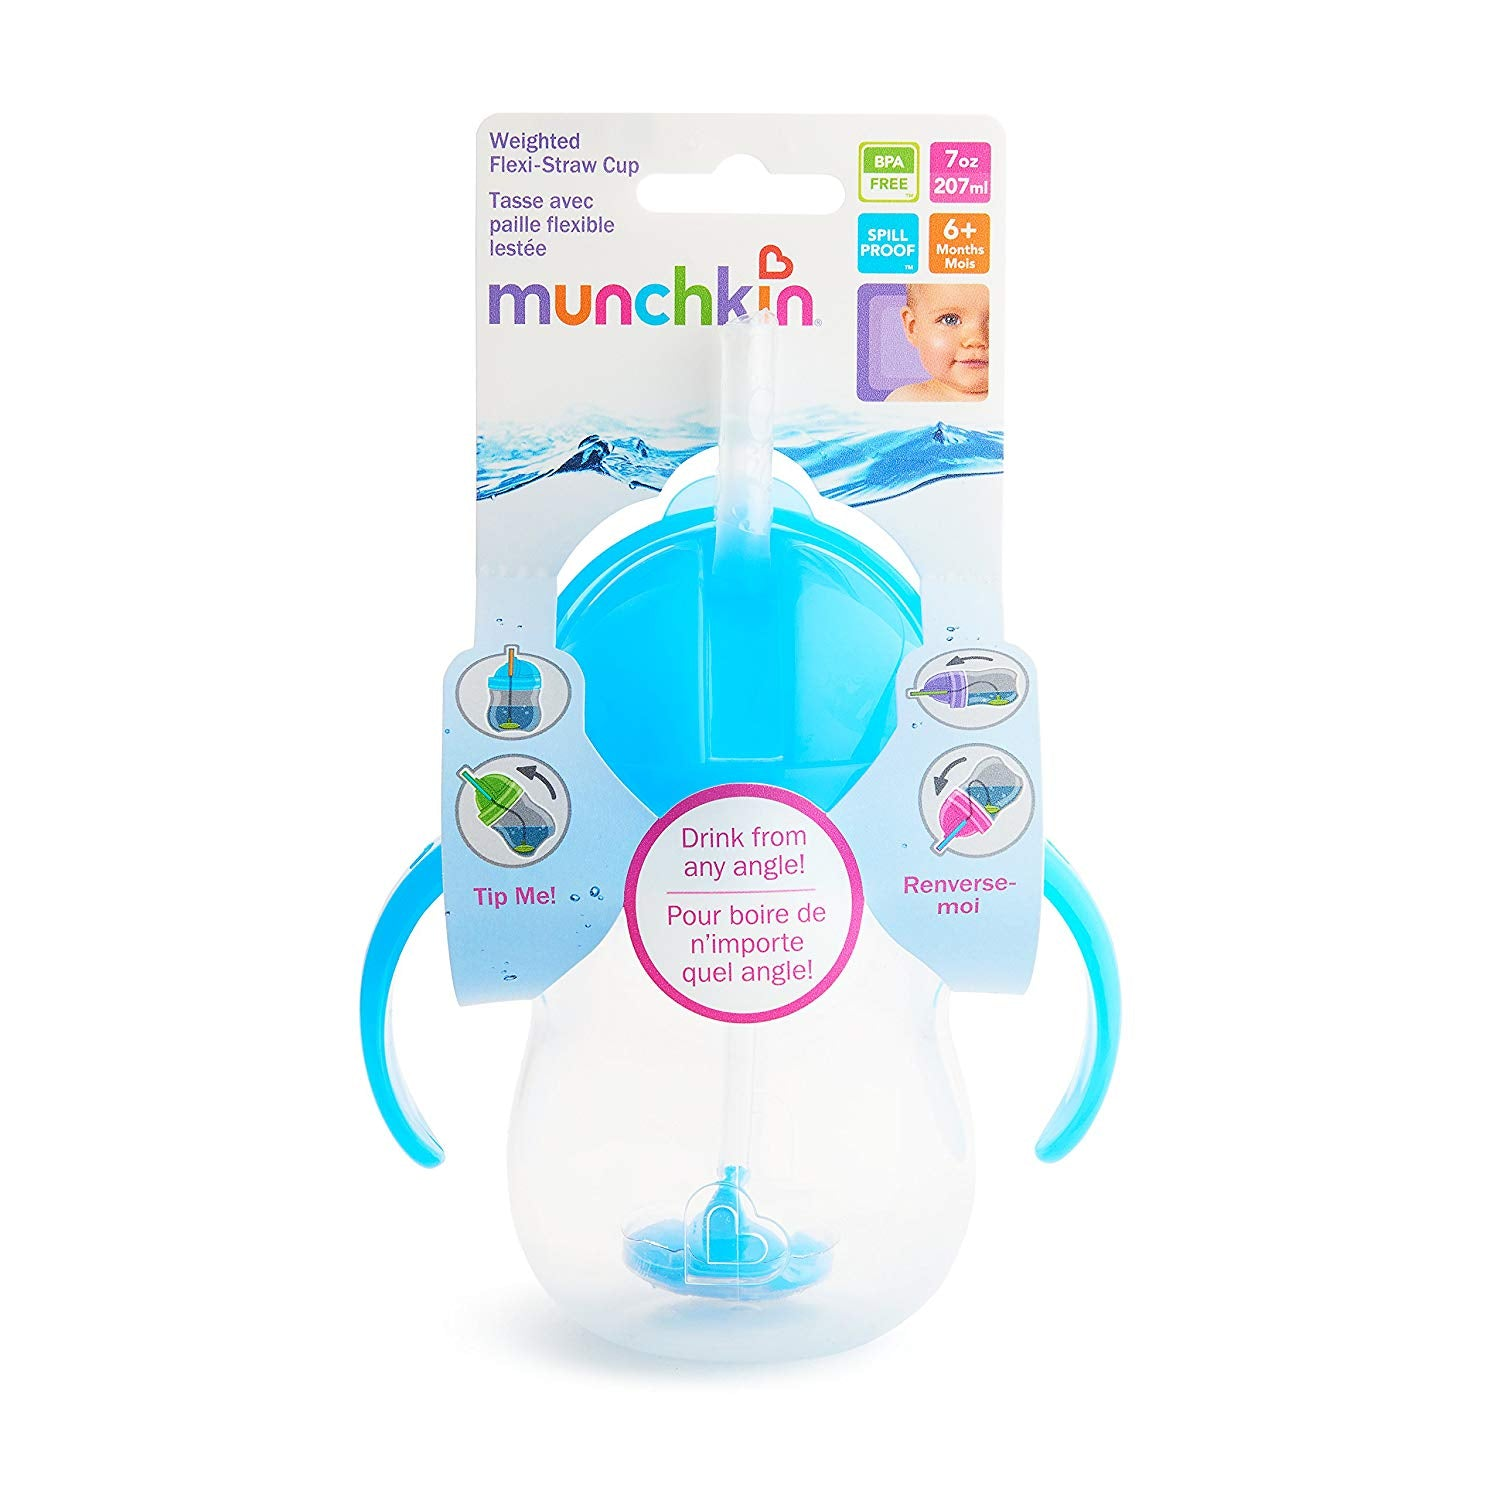 Munchkin Click Lock Weighted Flexi-Straw Cup – 7oz